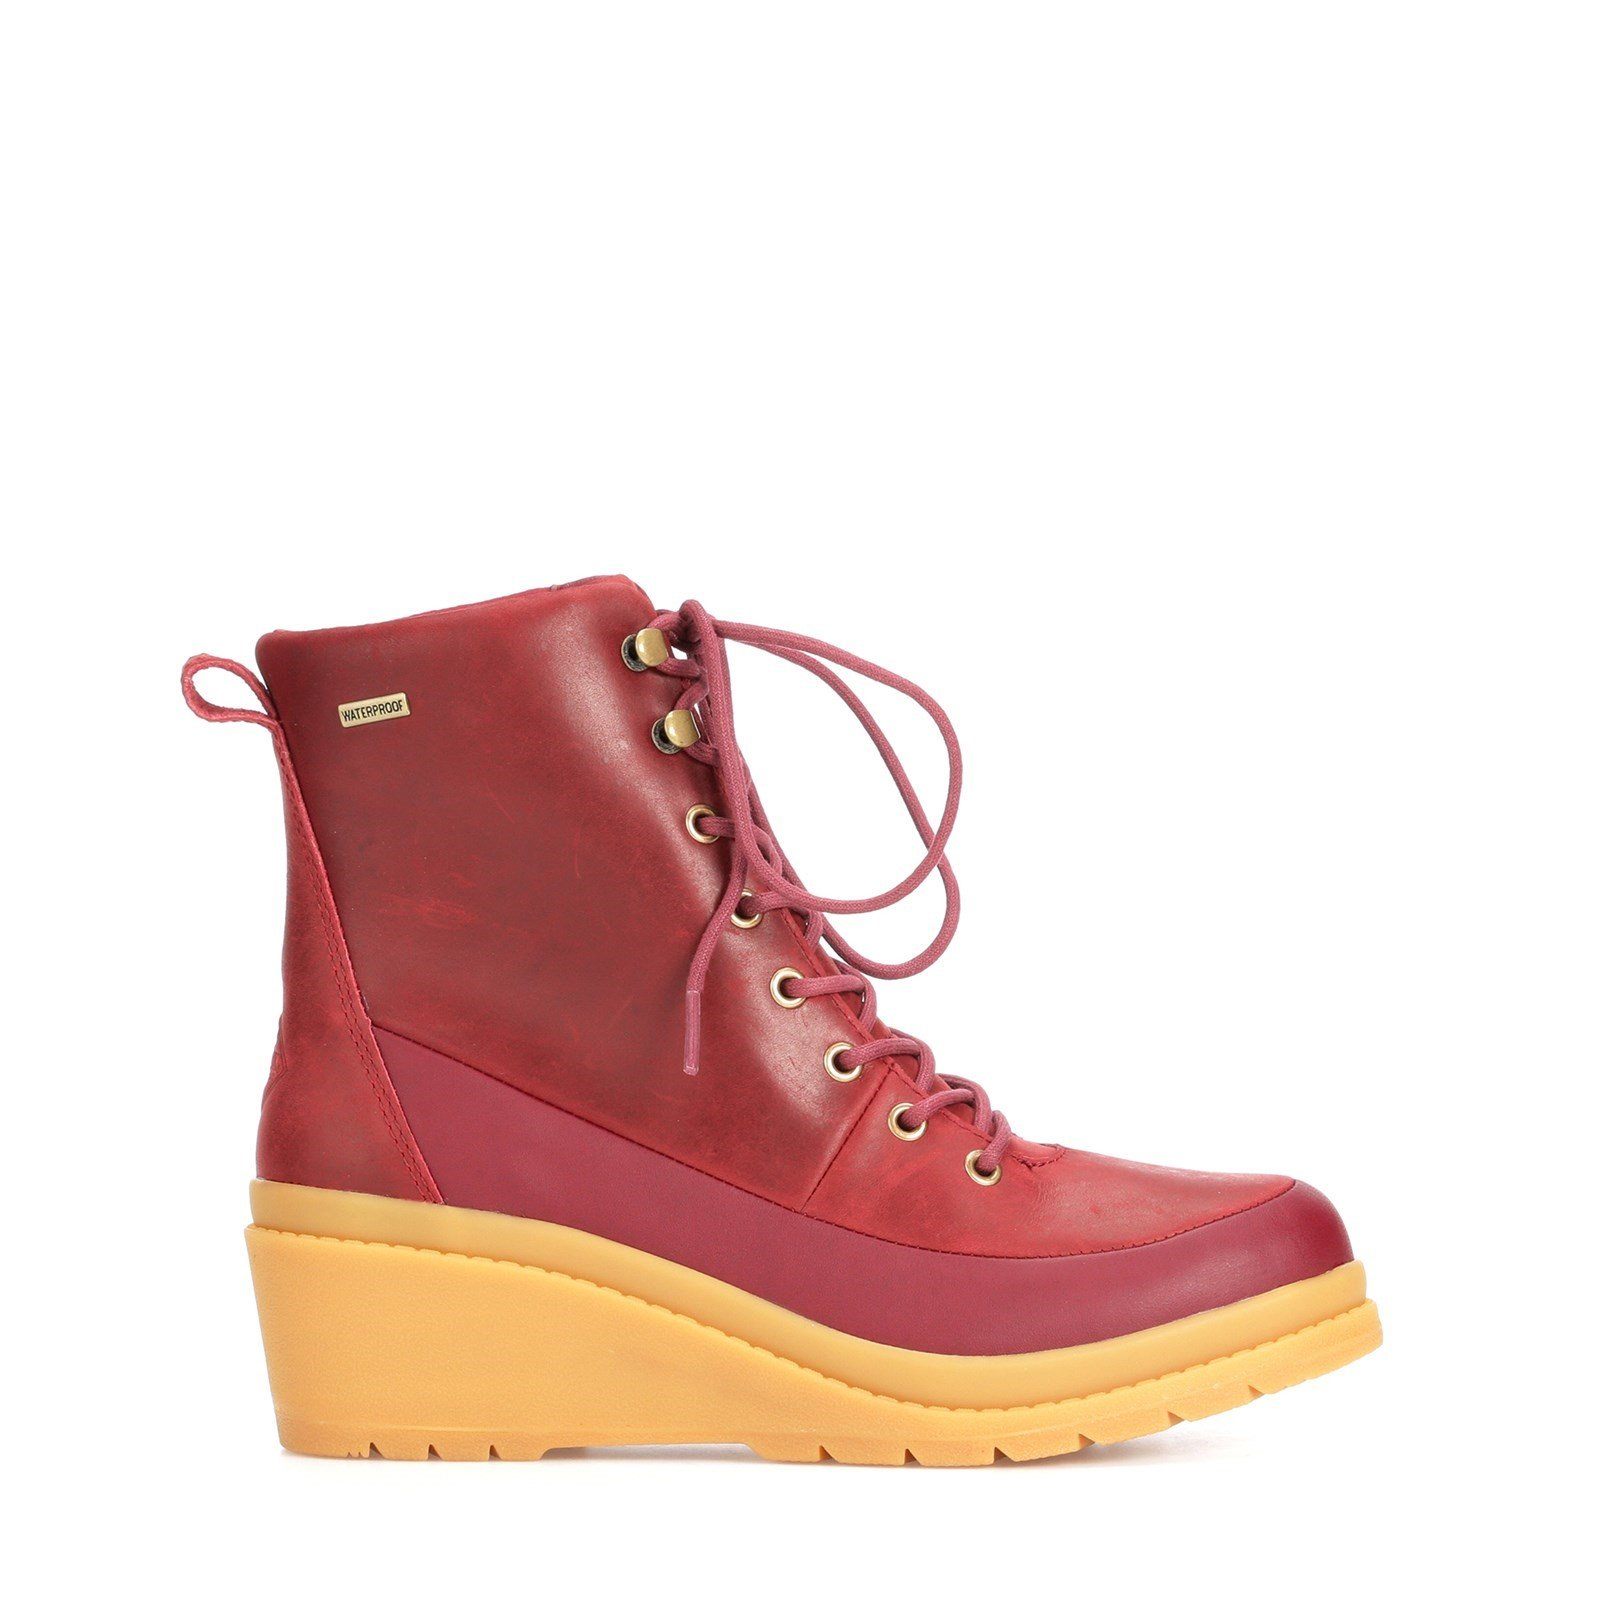 Muck Boots Women's Liberty Leather Ankle Boots Various Colours 31813 - Cordovan 7.5